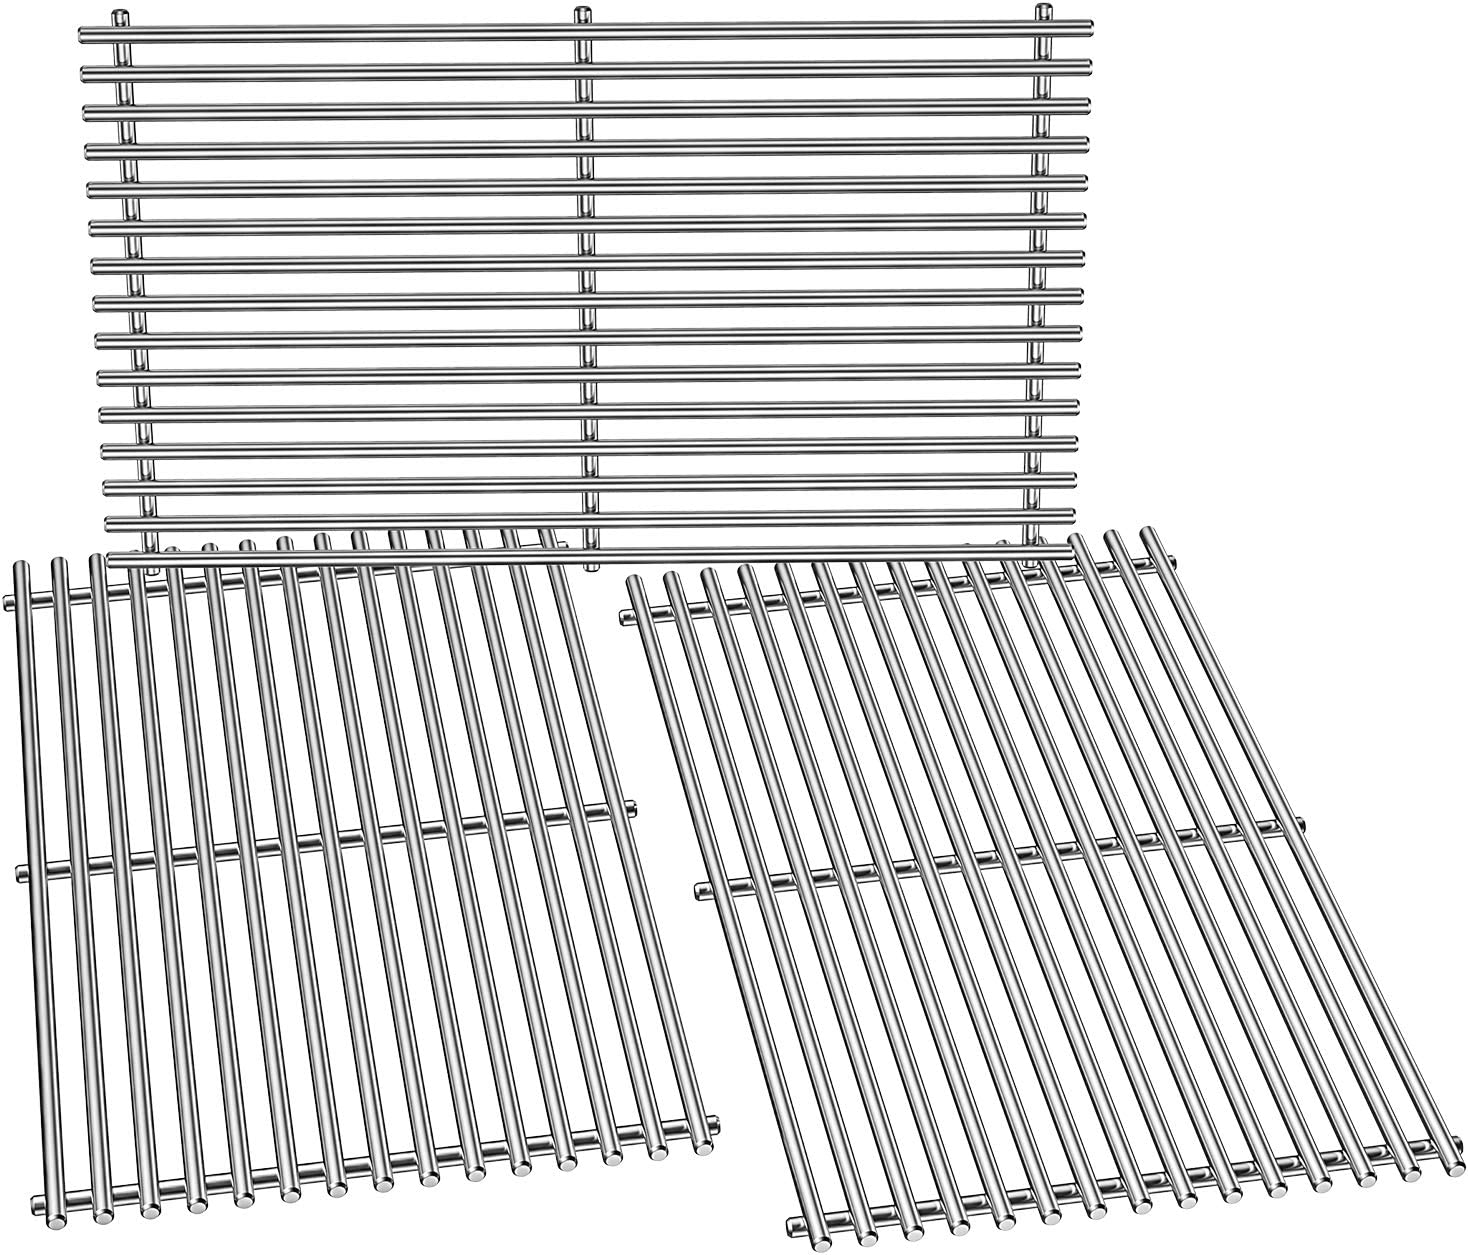 Stanbroil Replacement BBQ Stainless Steel Grill Cooking Grate for Weber Genesis II and Genesis II LX 400 Series(2017) Gas Grills, Set of 3